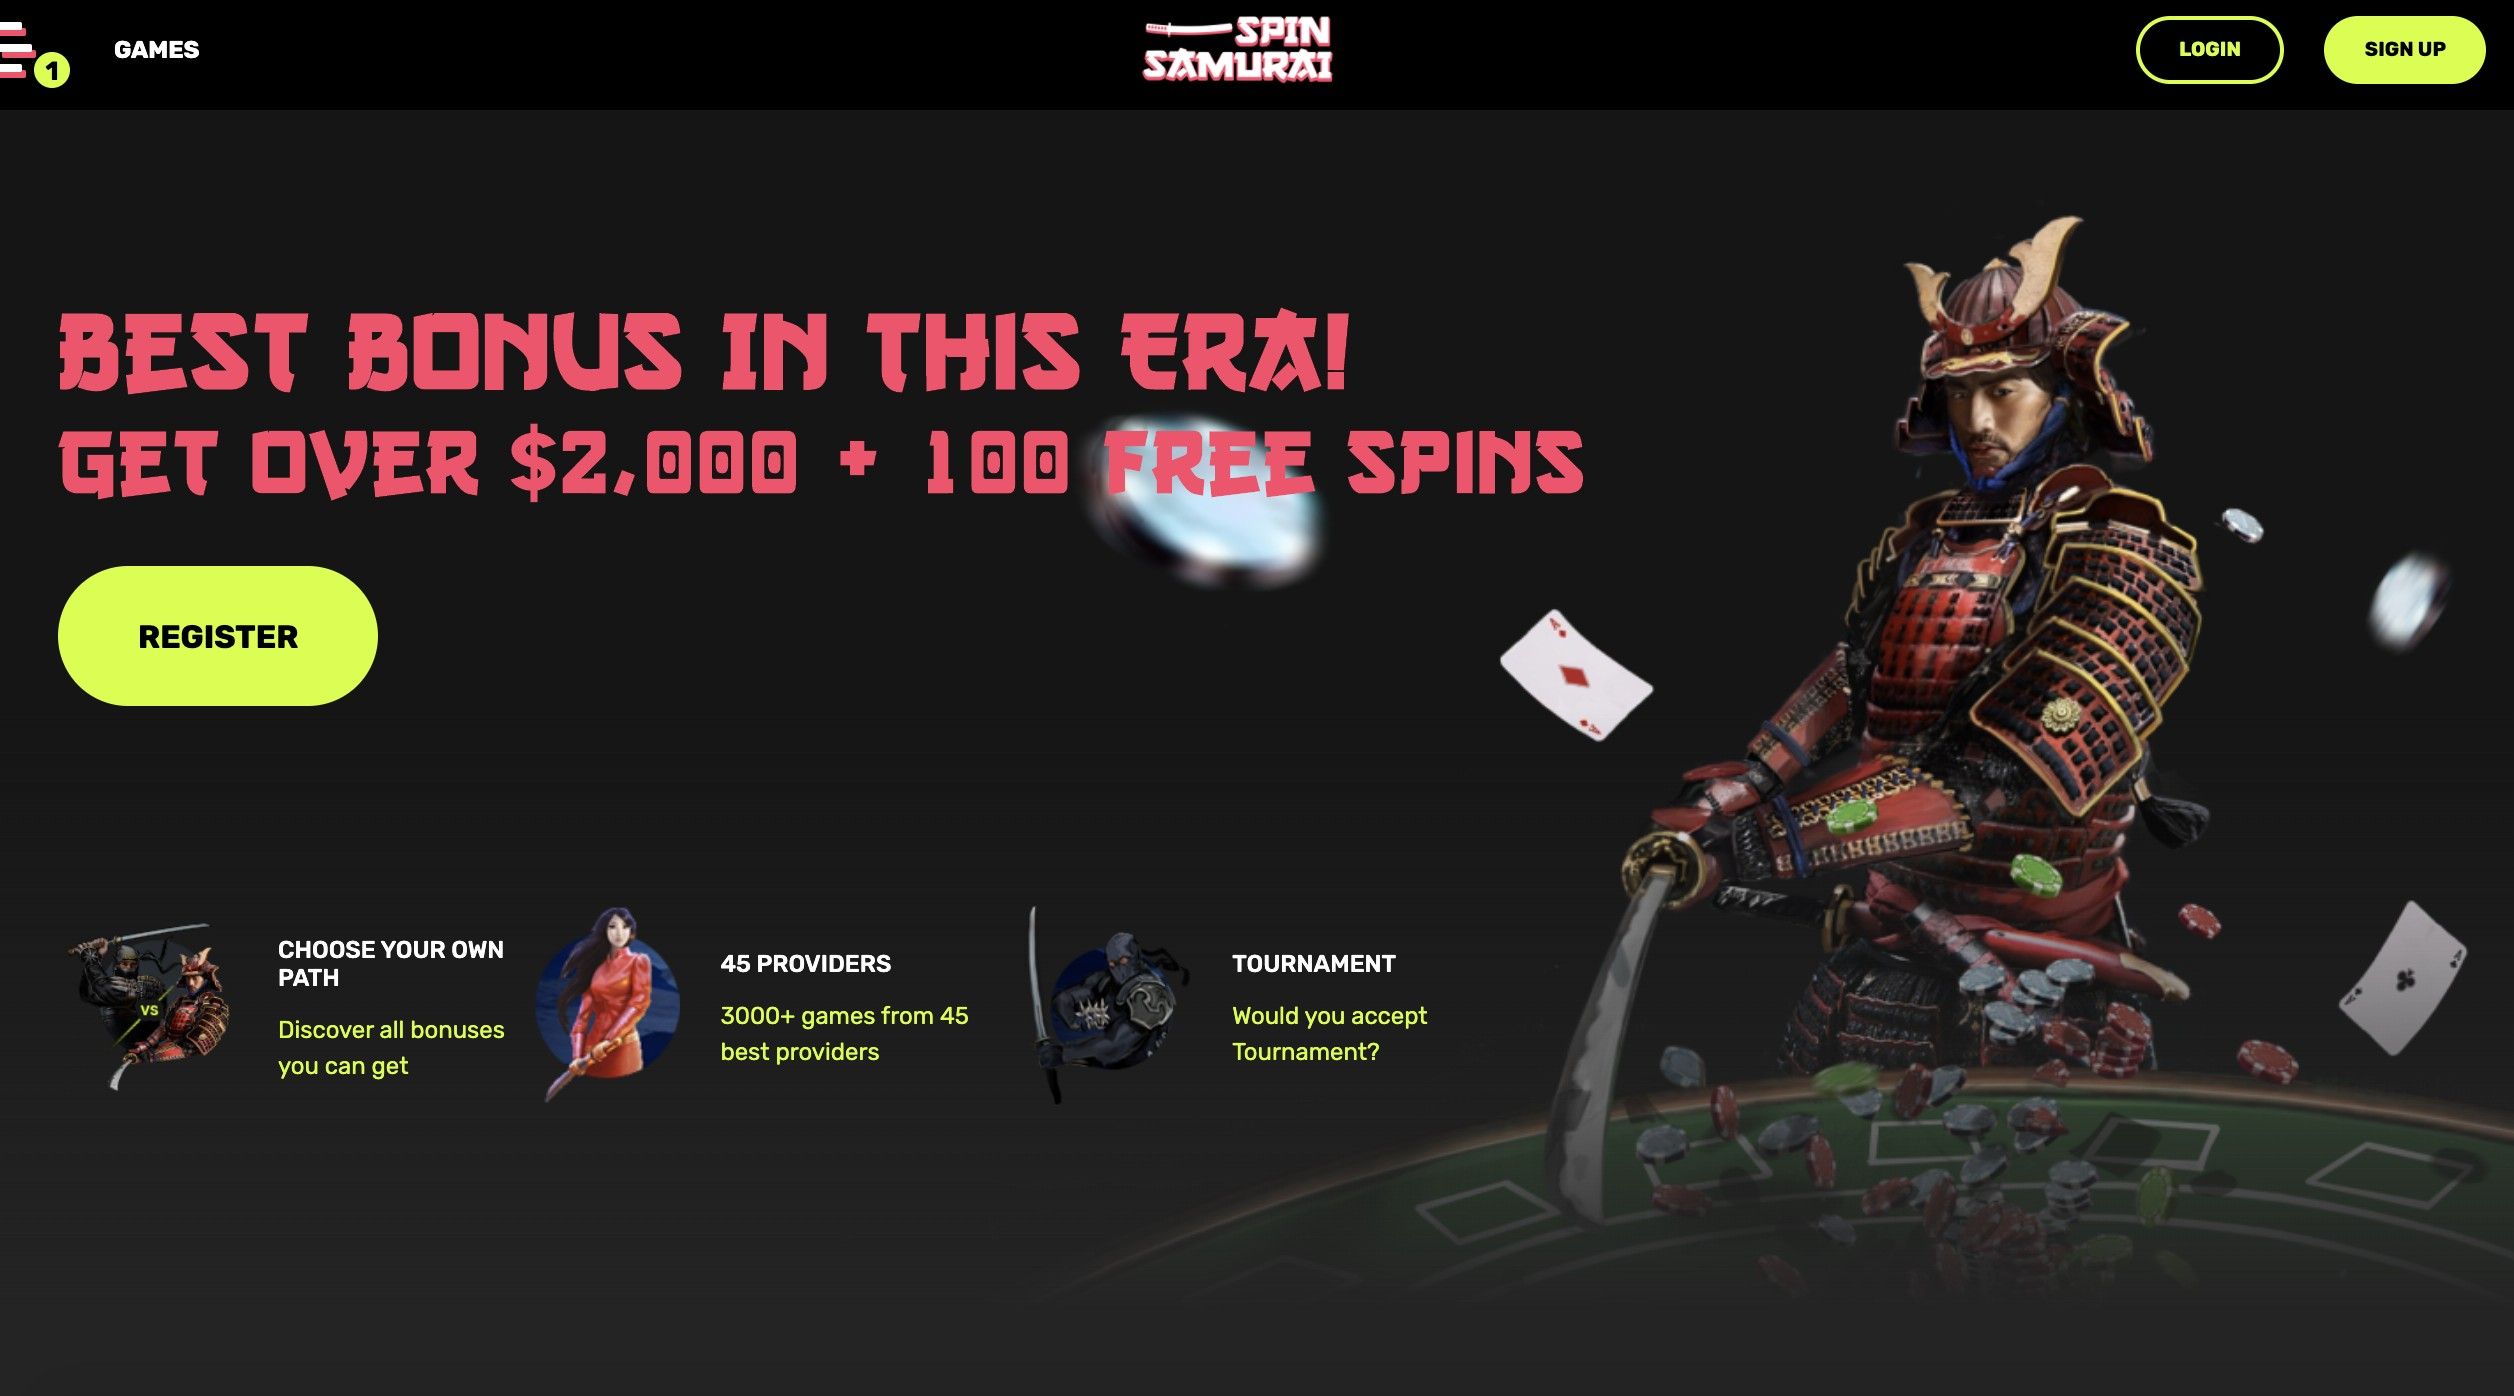 More Info and Promo Codes in our Spin Samurai Review